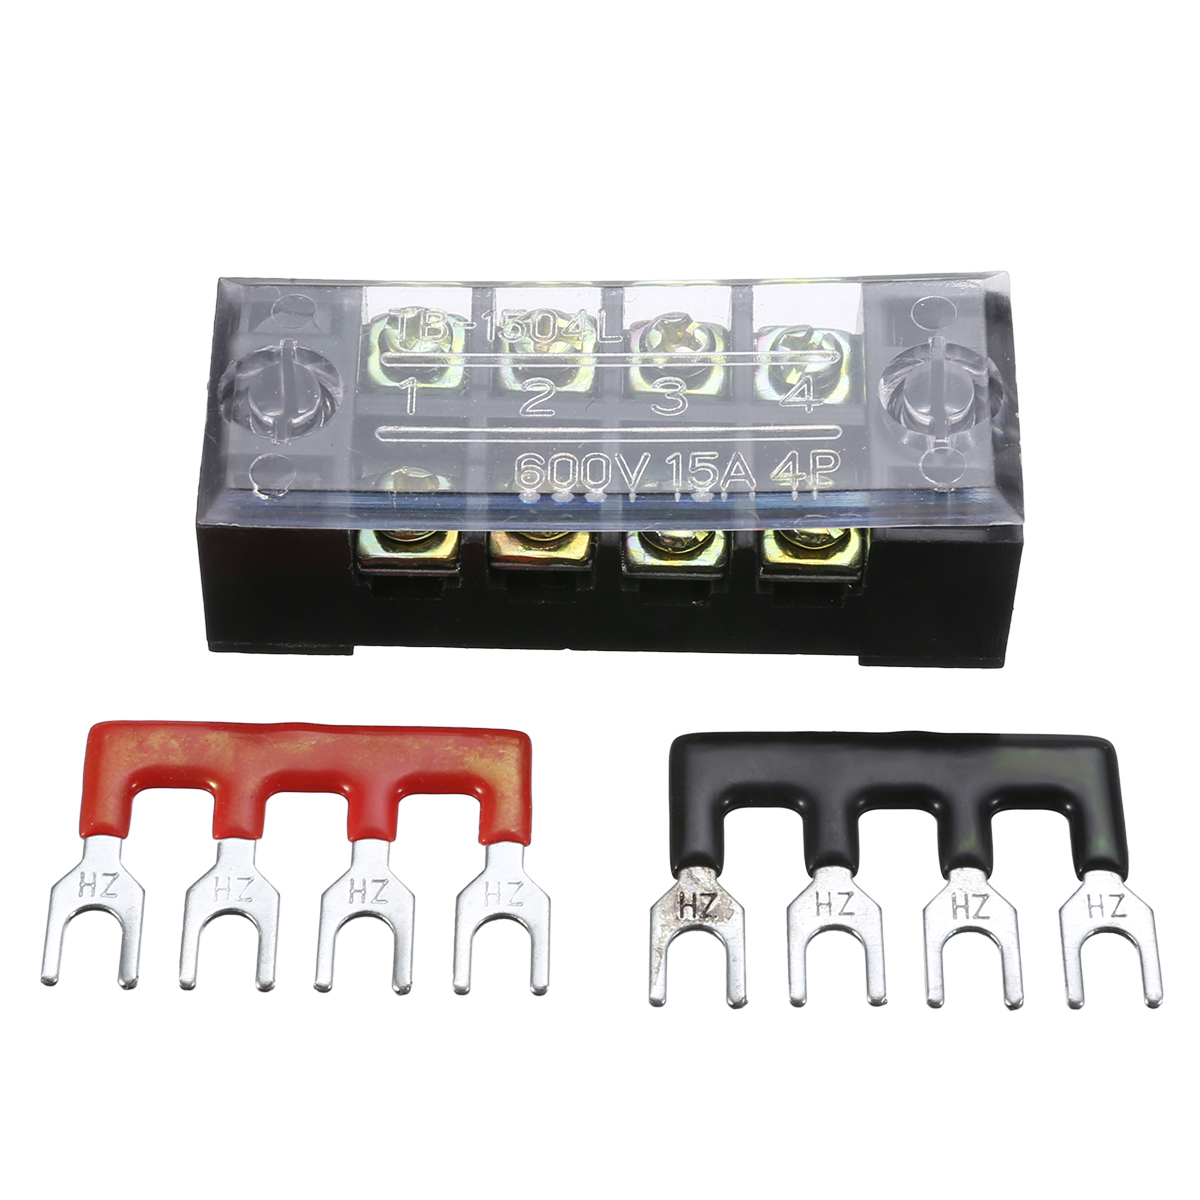 1pc 4P 600V 15A Dual Row Wire Screw Barrier Terminal Block Power Distribution Terminal for Home Wire with 2 Connector Strips image